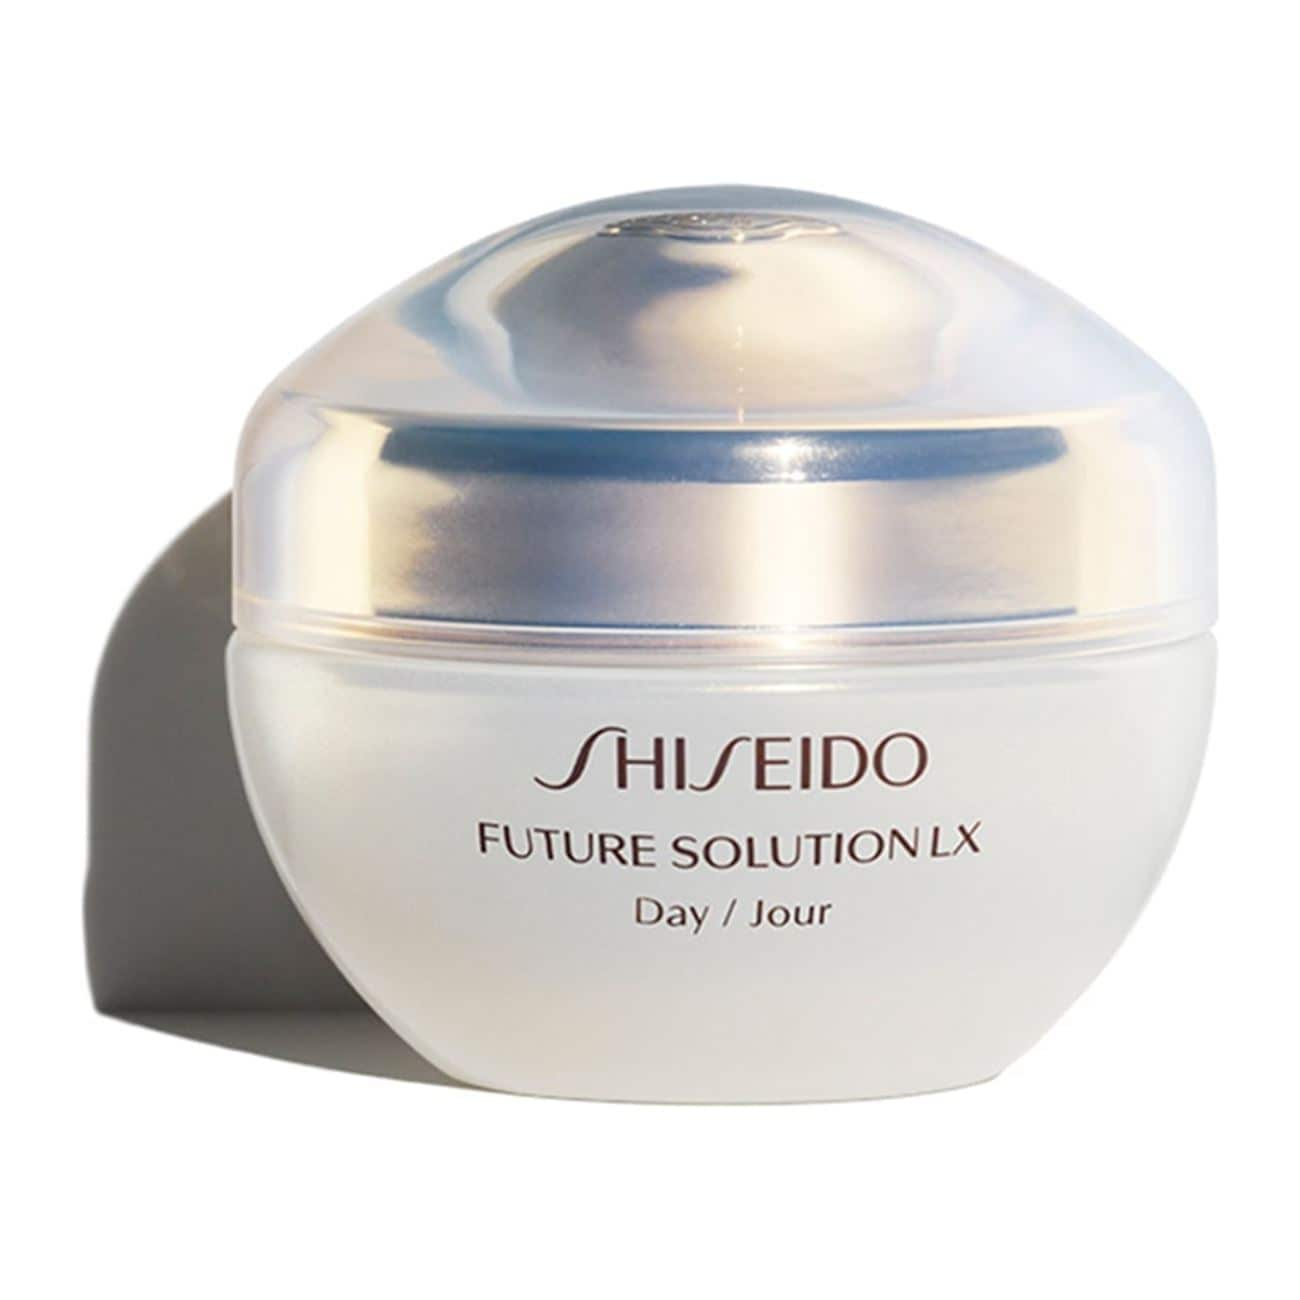 Future Solution Lx Total Protective Cream SPF20